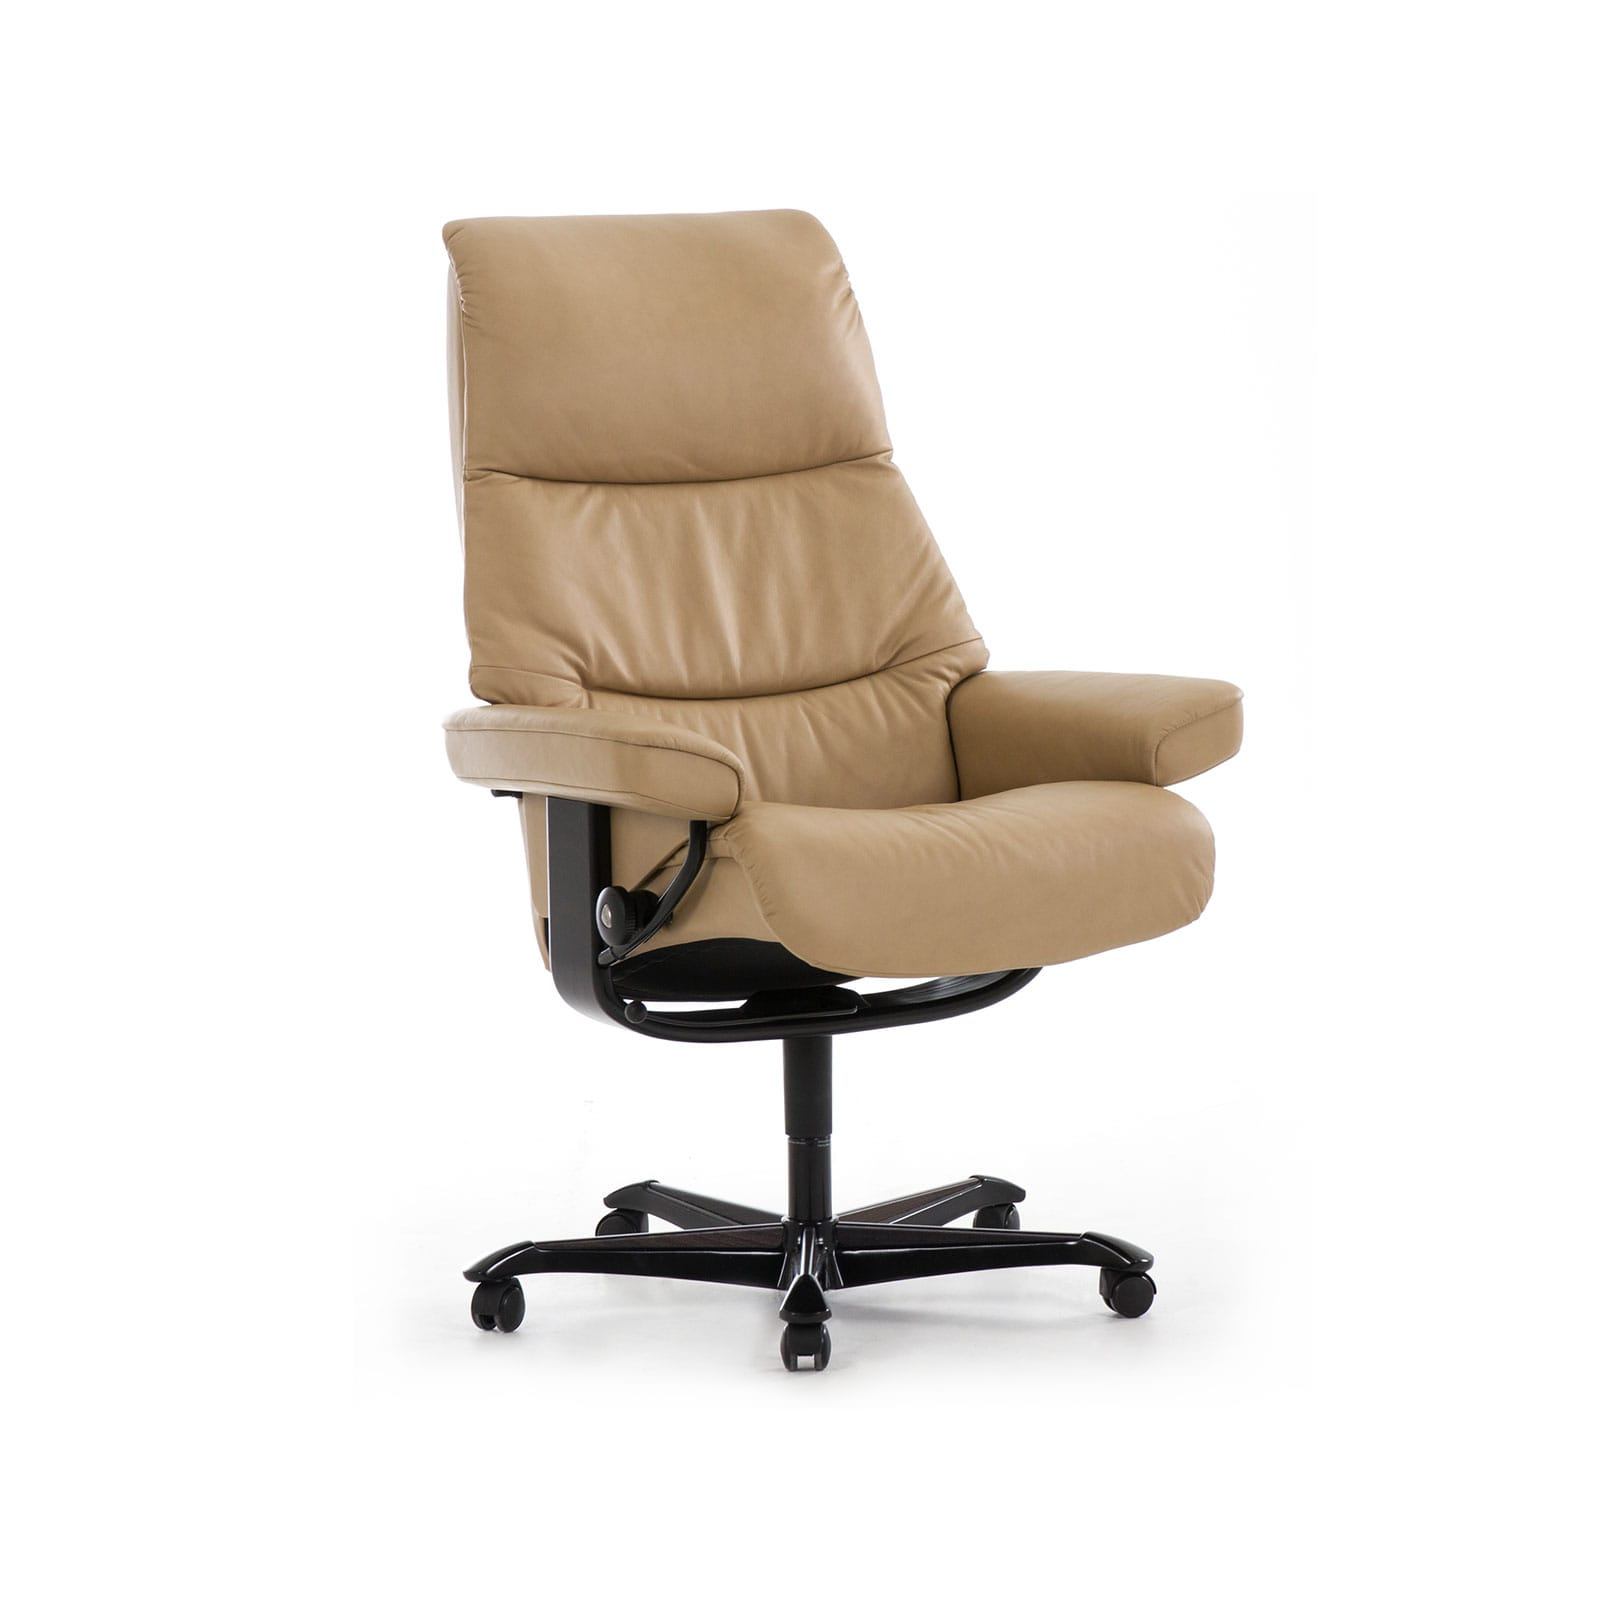 Relaxsessel Mit Rollen Stressless Sessel View Home Office Leder Cori Beige